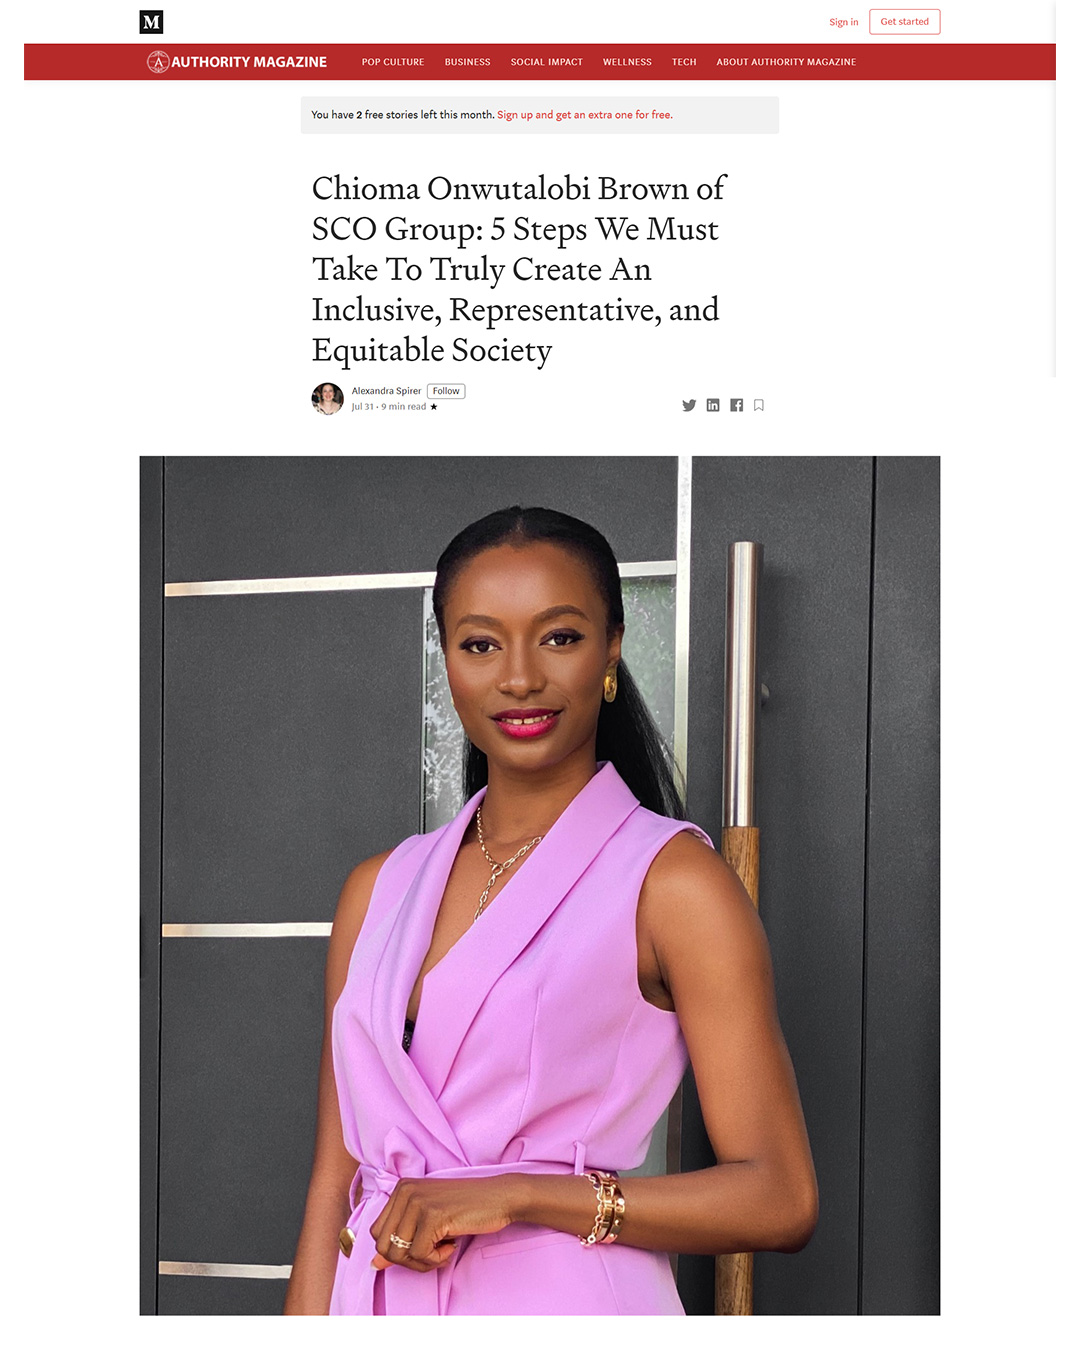 https://medium.com/authority-magazine/chioma-onwutalobi-brown-of-sco-group-you-have-to-move-different-if-you-want-different-d162df89b0b4